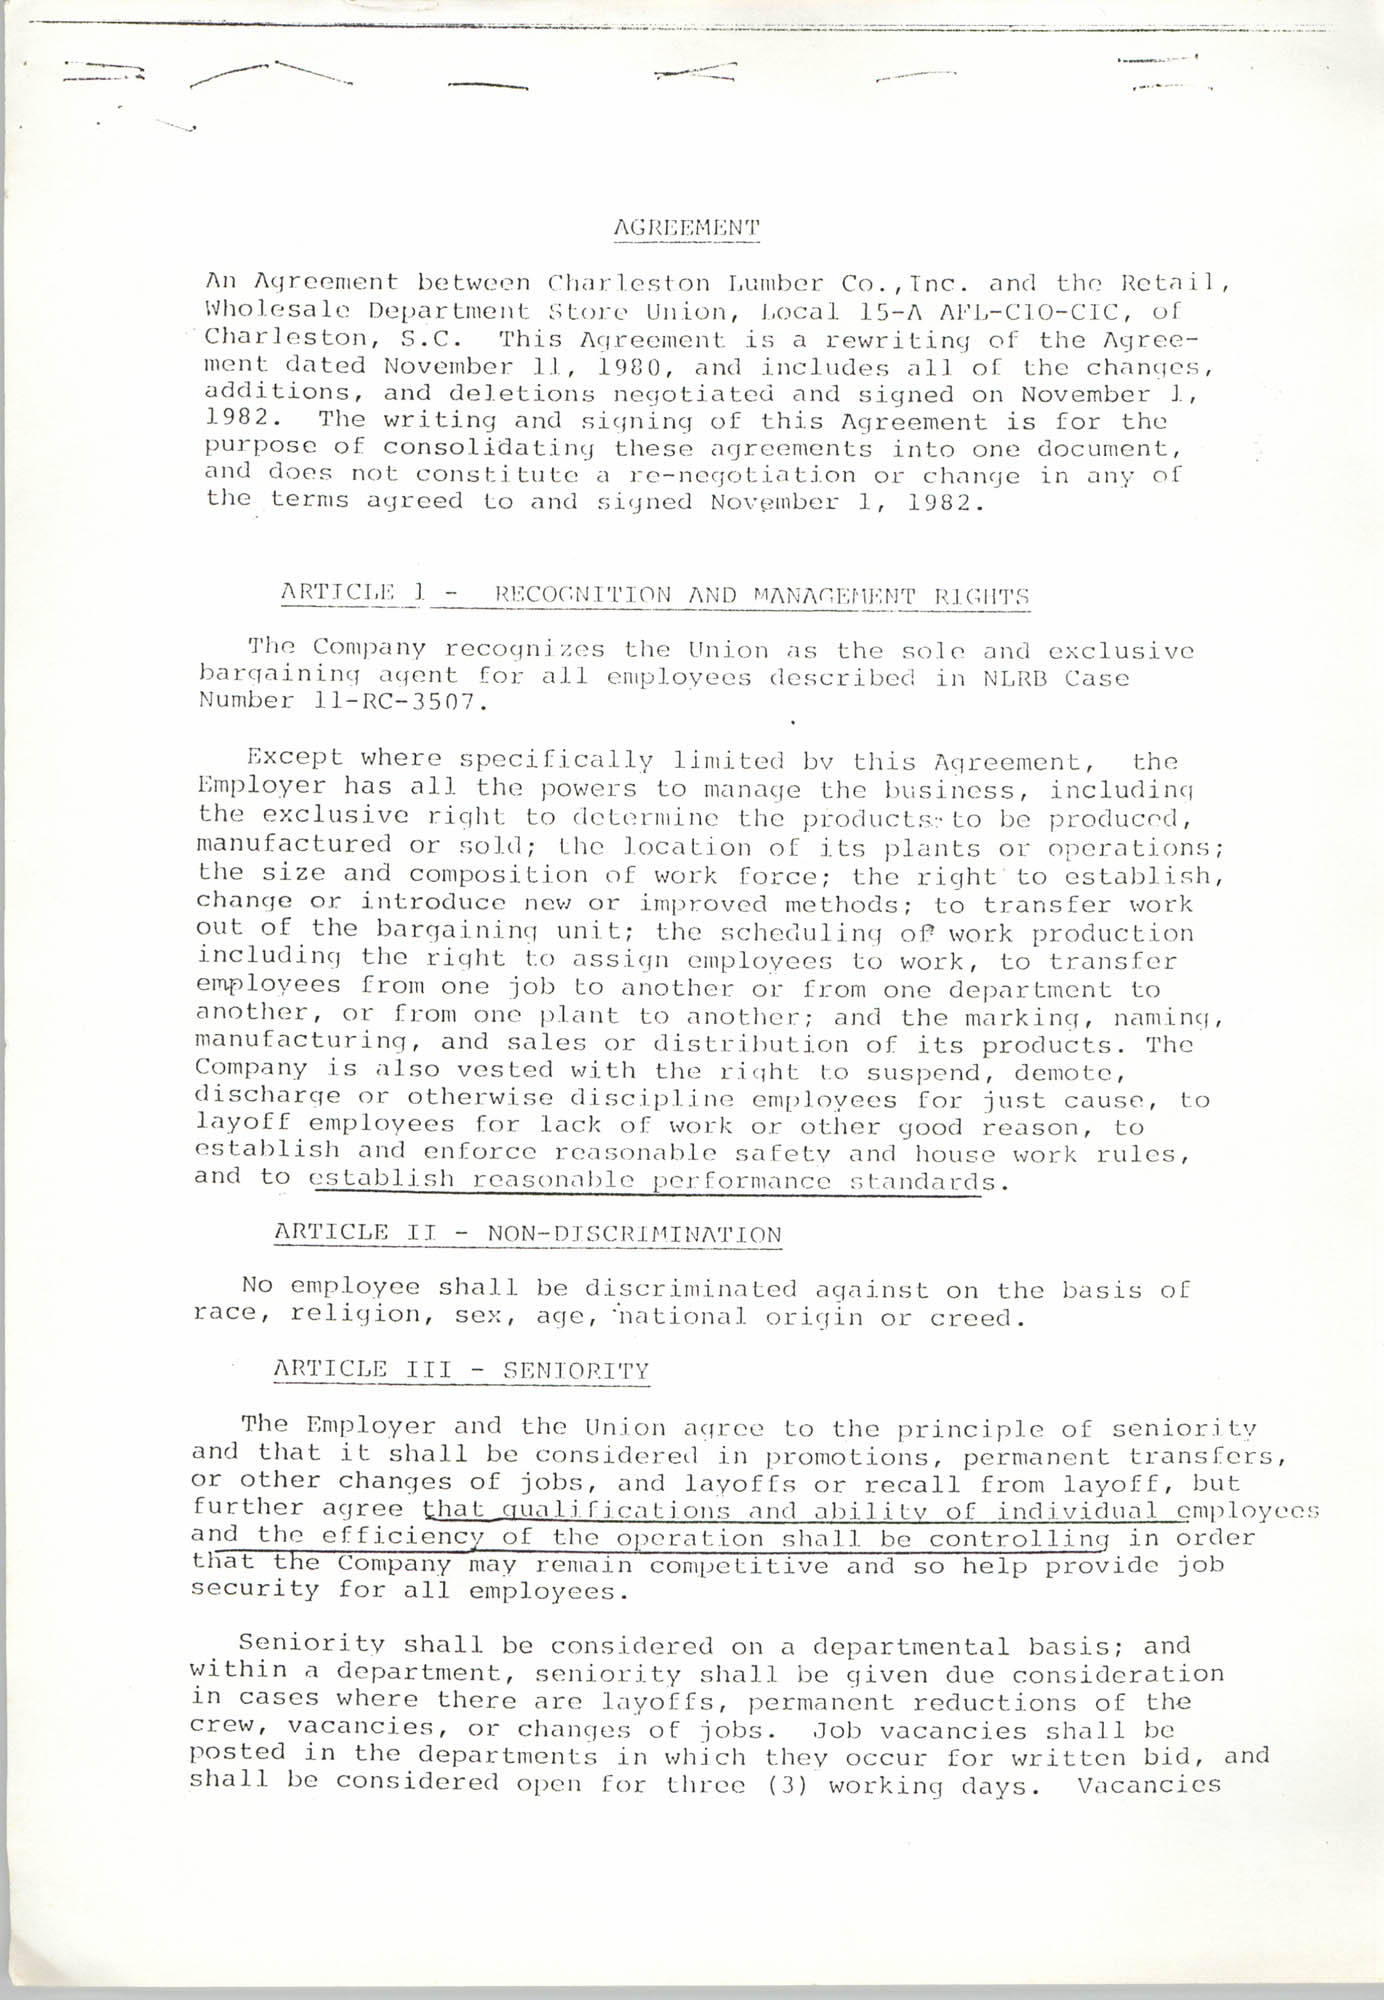 Agreement, Charleston Lumber Co., Inc. and Retail, Wholesale Department Store Union, Page 1